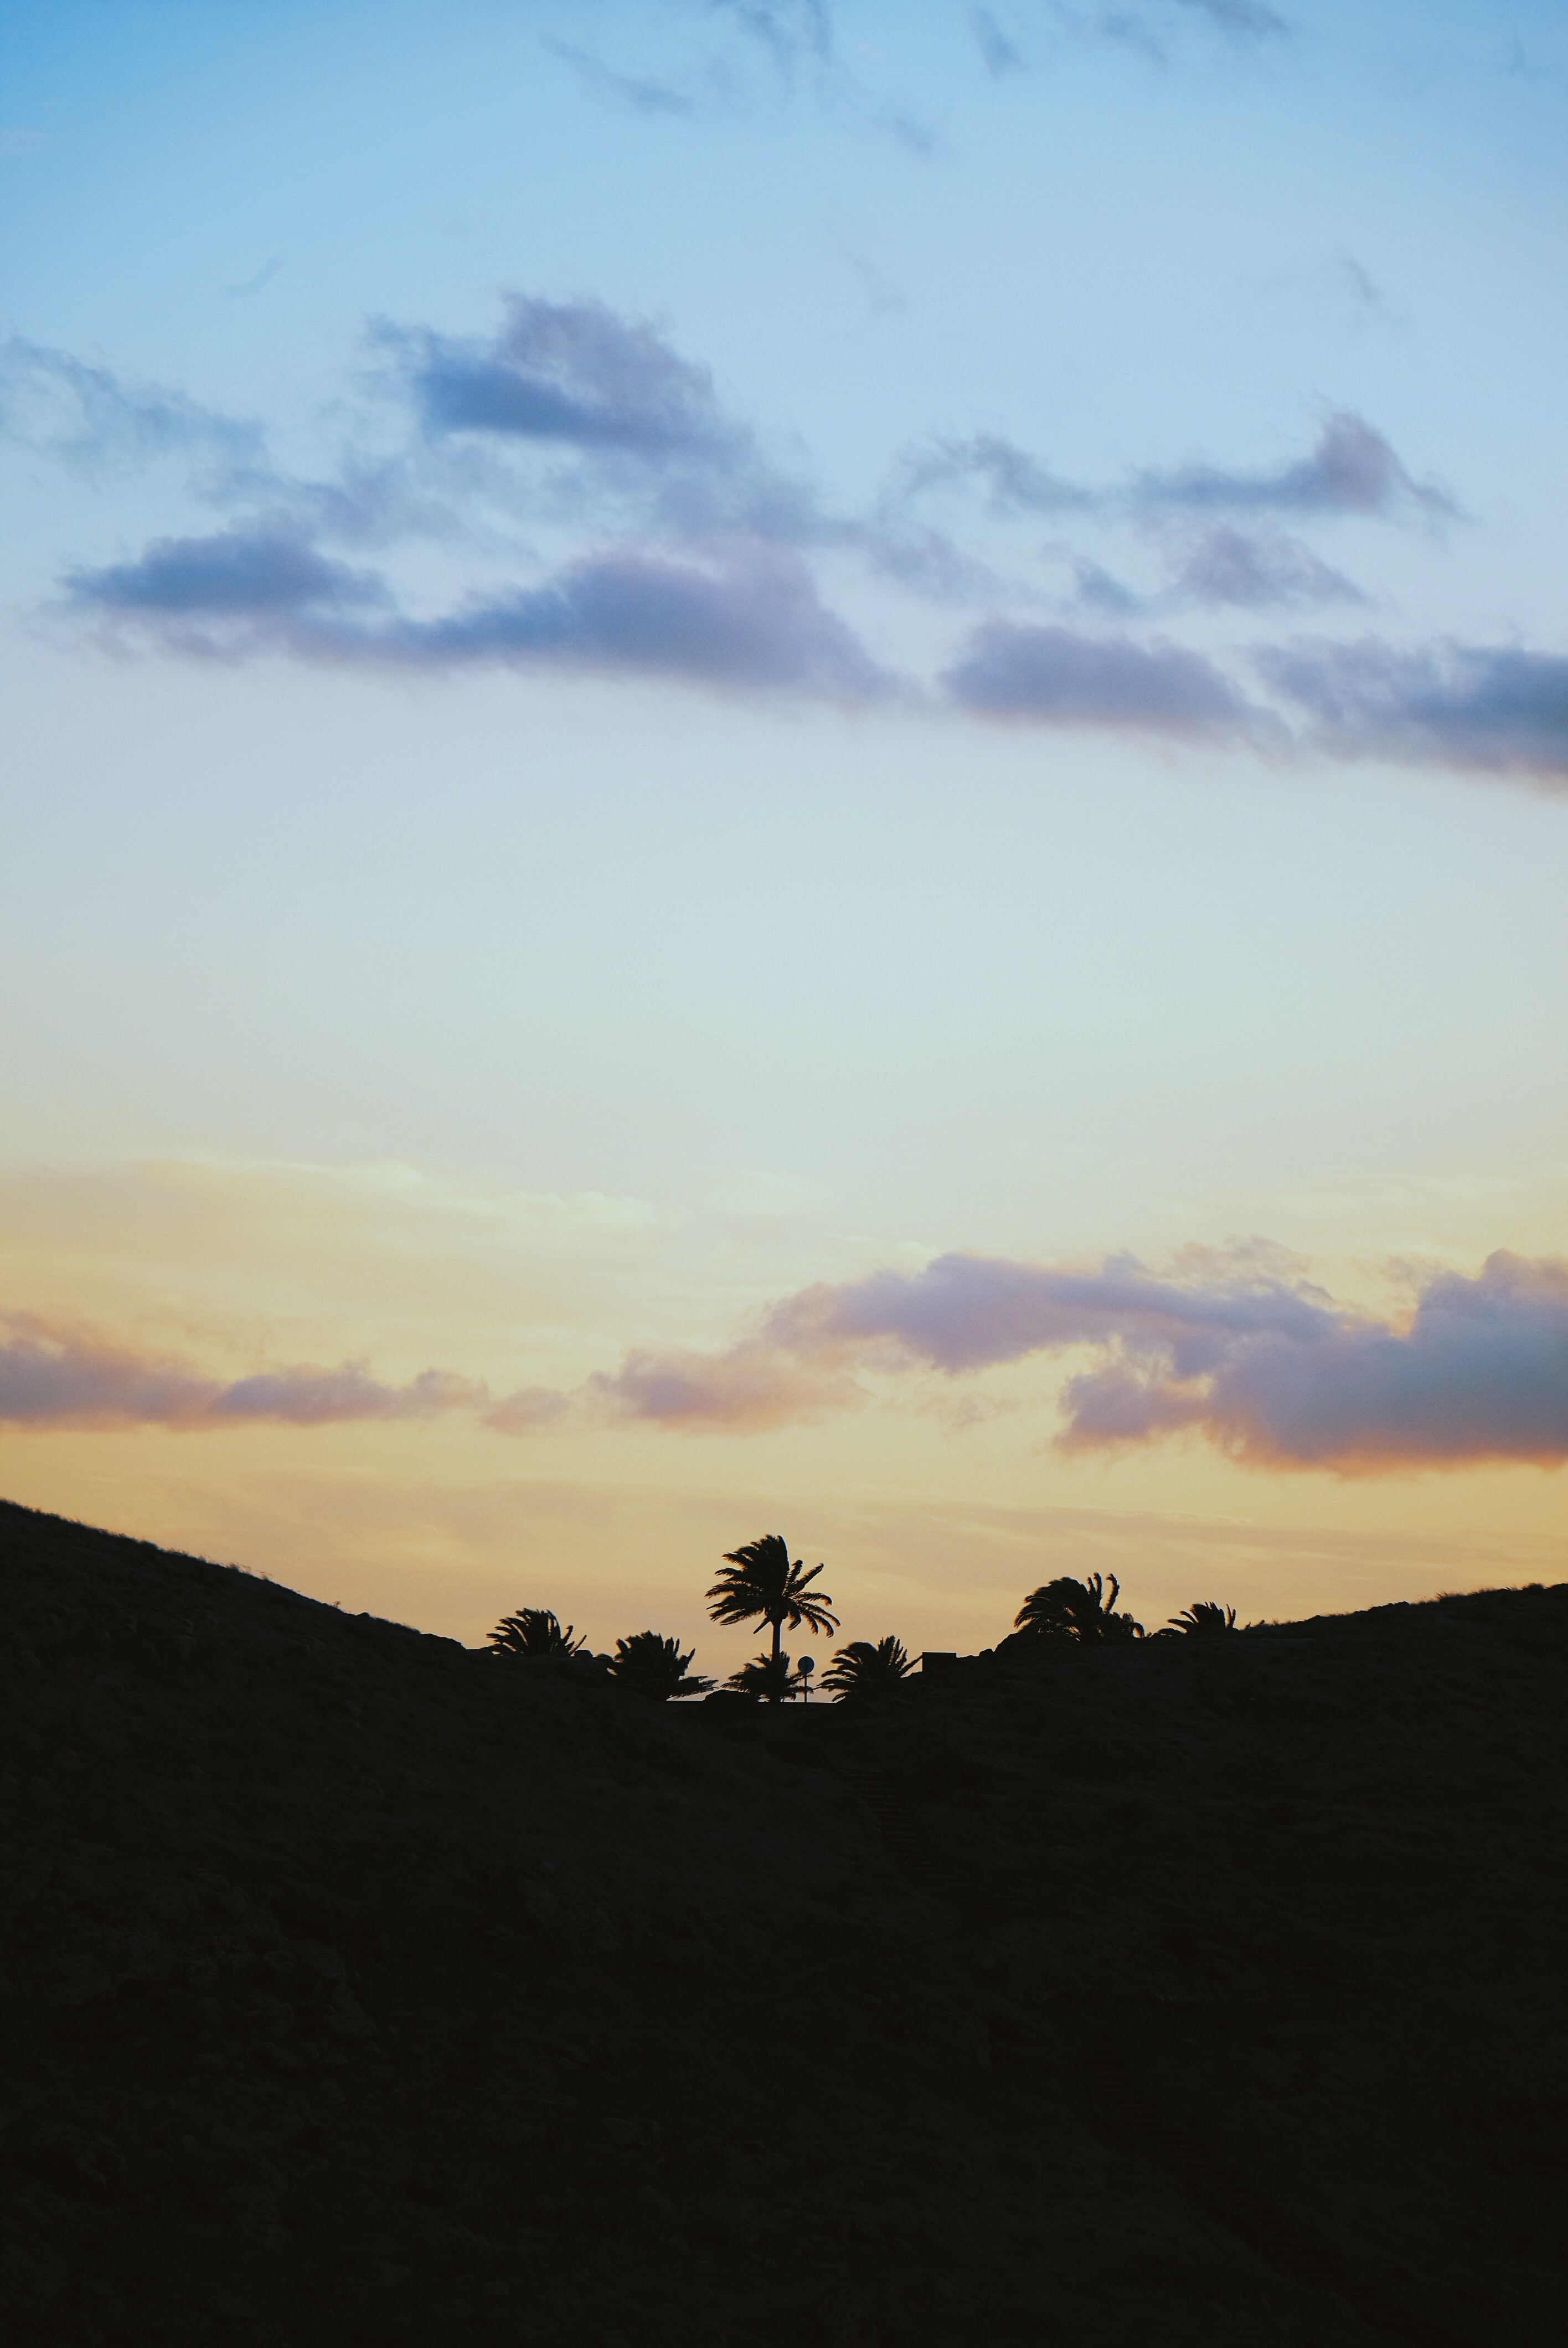 silhouette of palm tree on top of hill